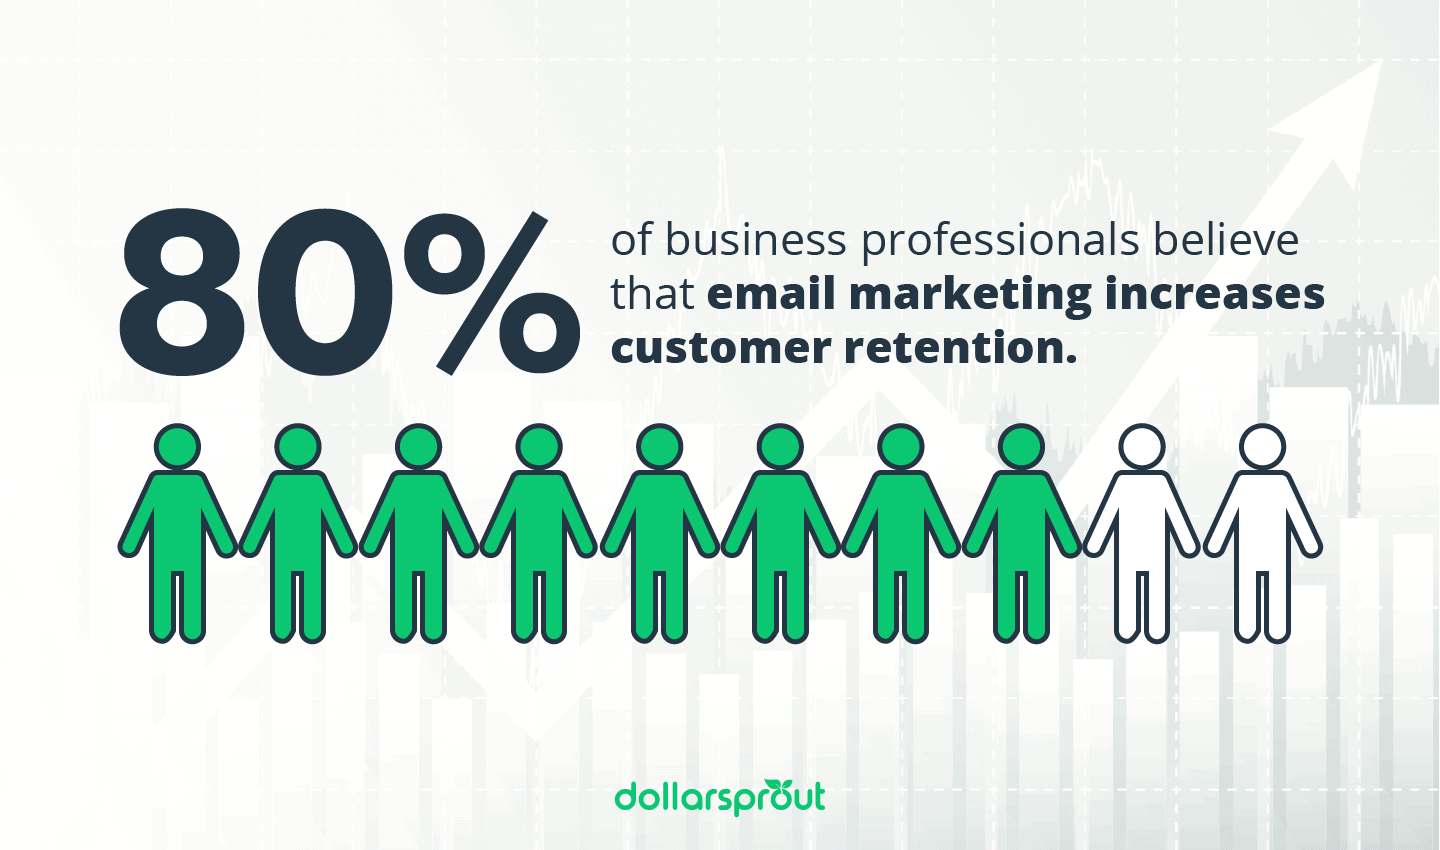 email marketing increases retention